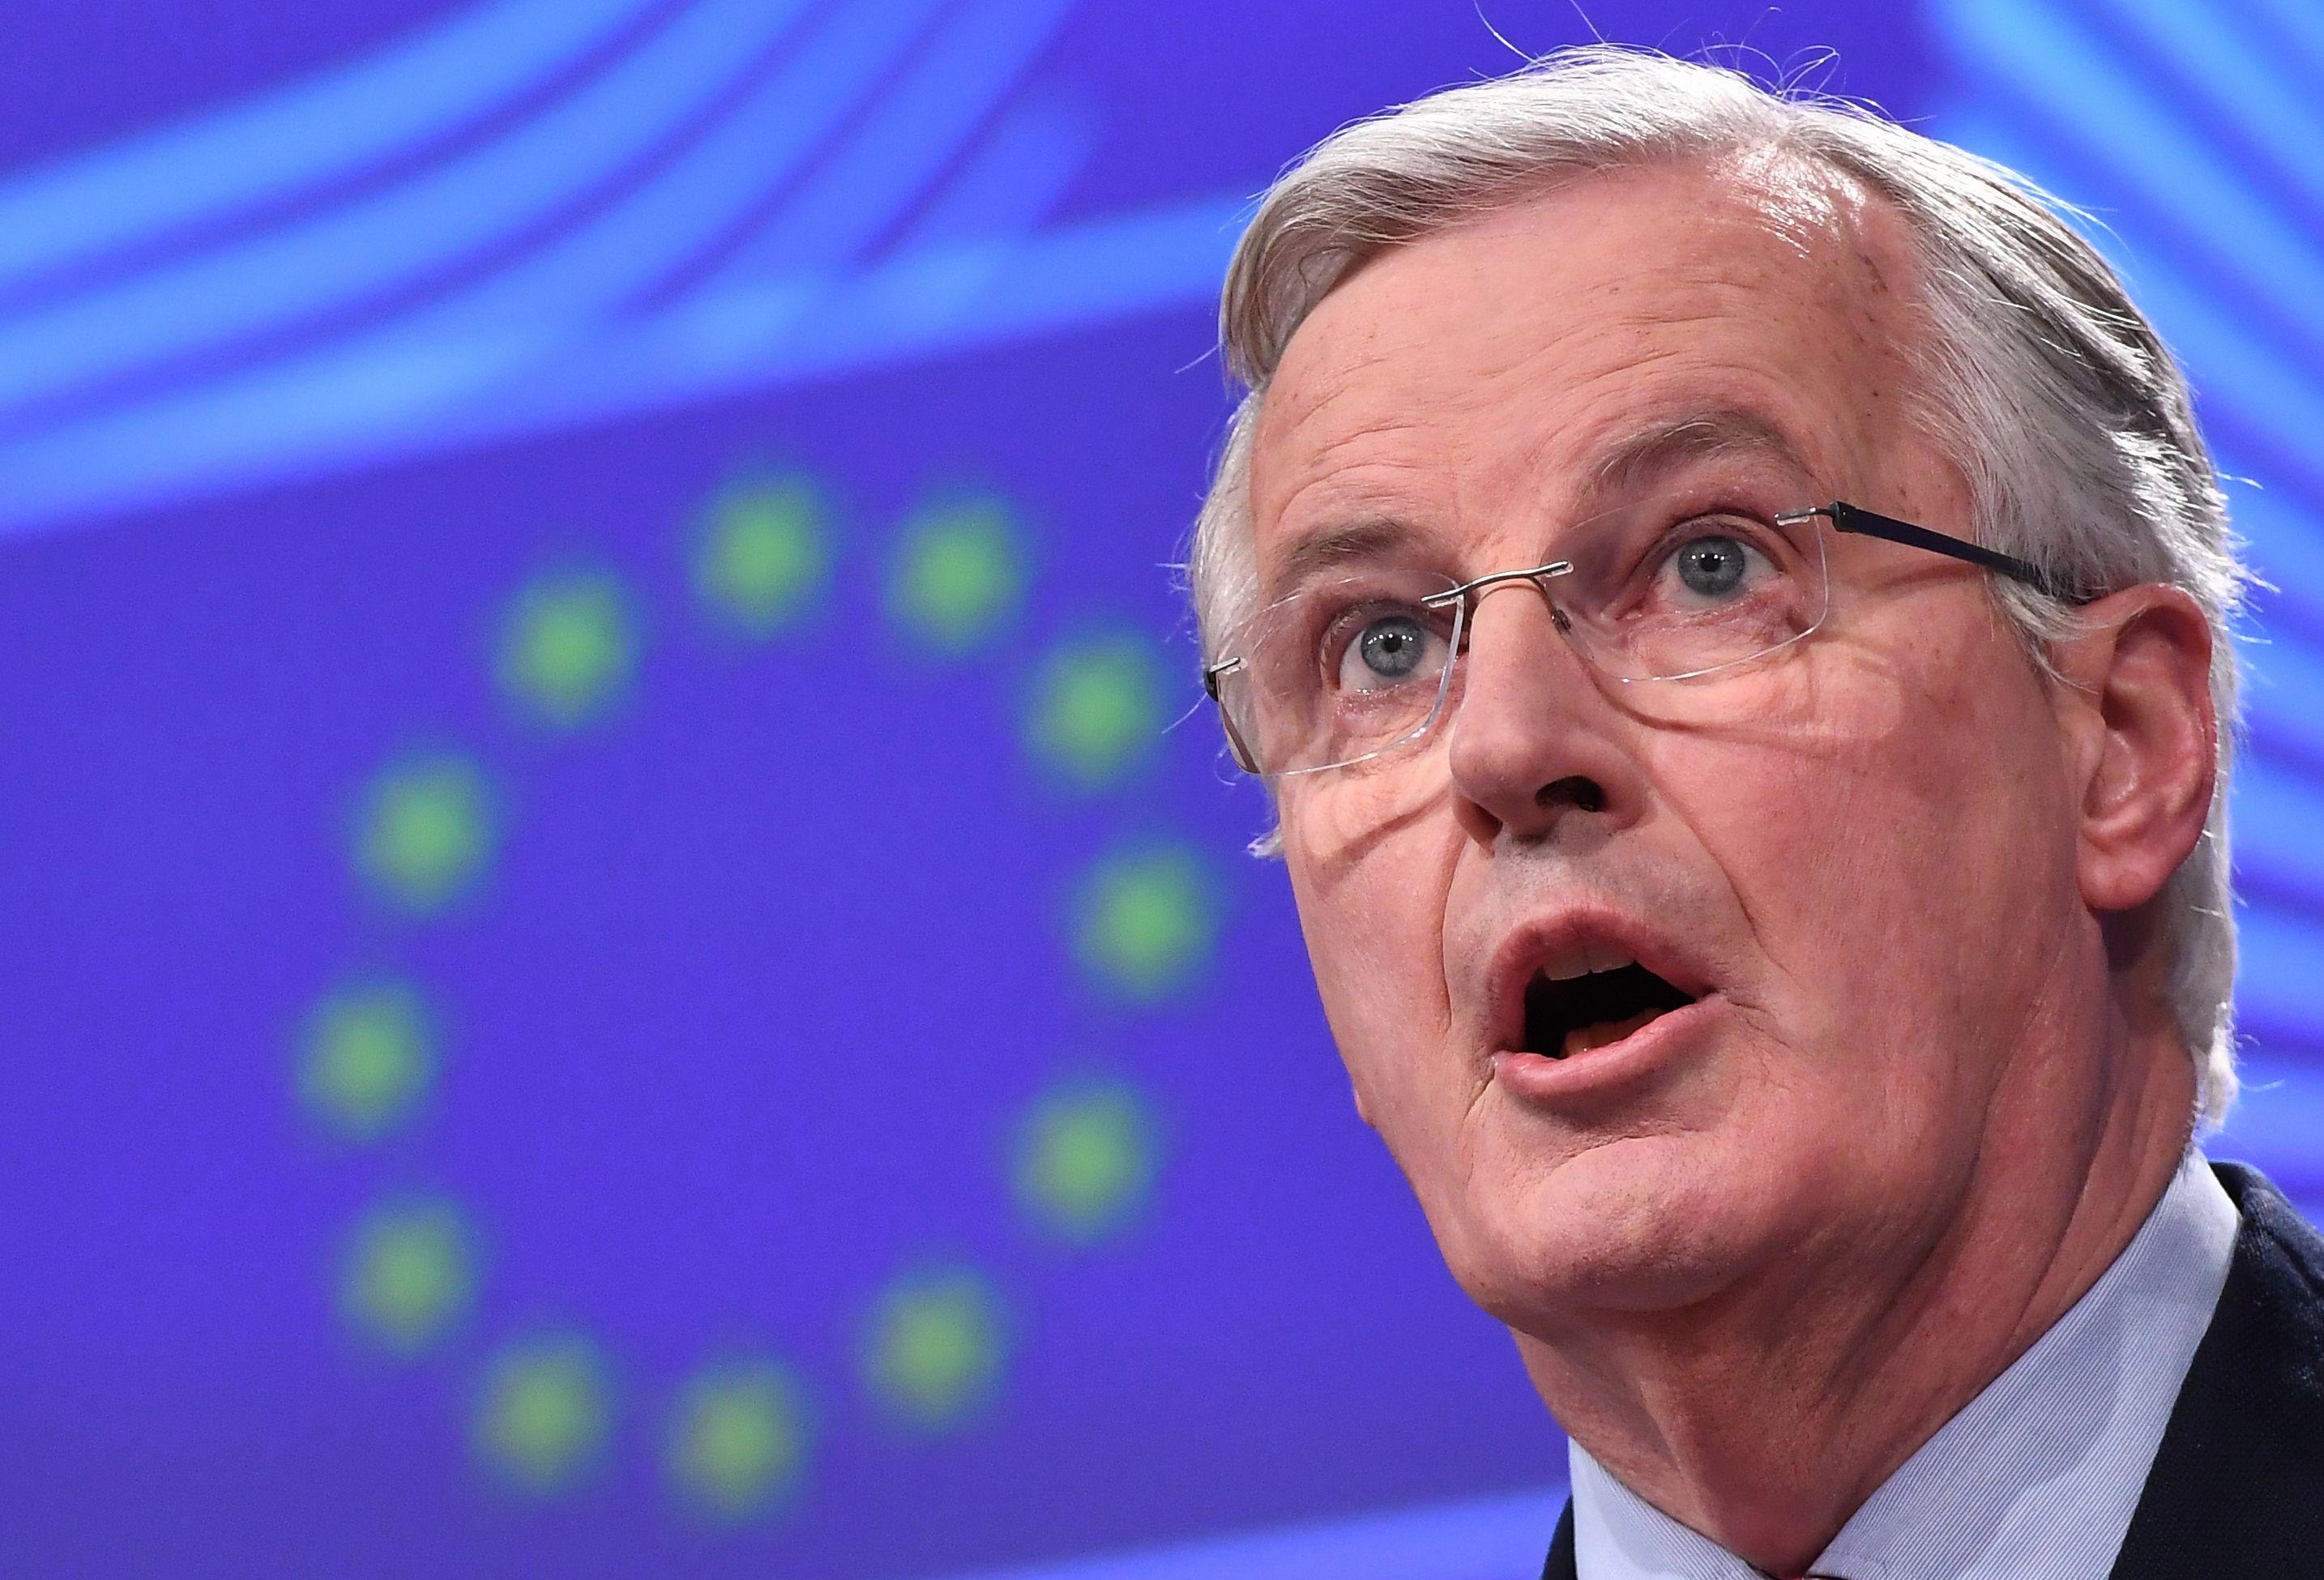 EU removes 'punishment clause' from draft Brexit transition deal threatening UK if we break EU rules